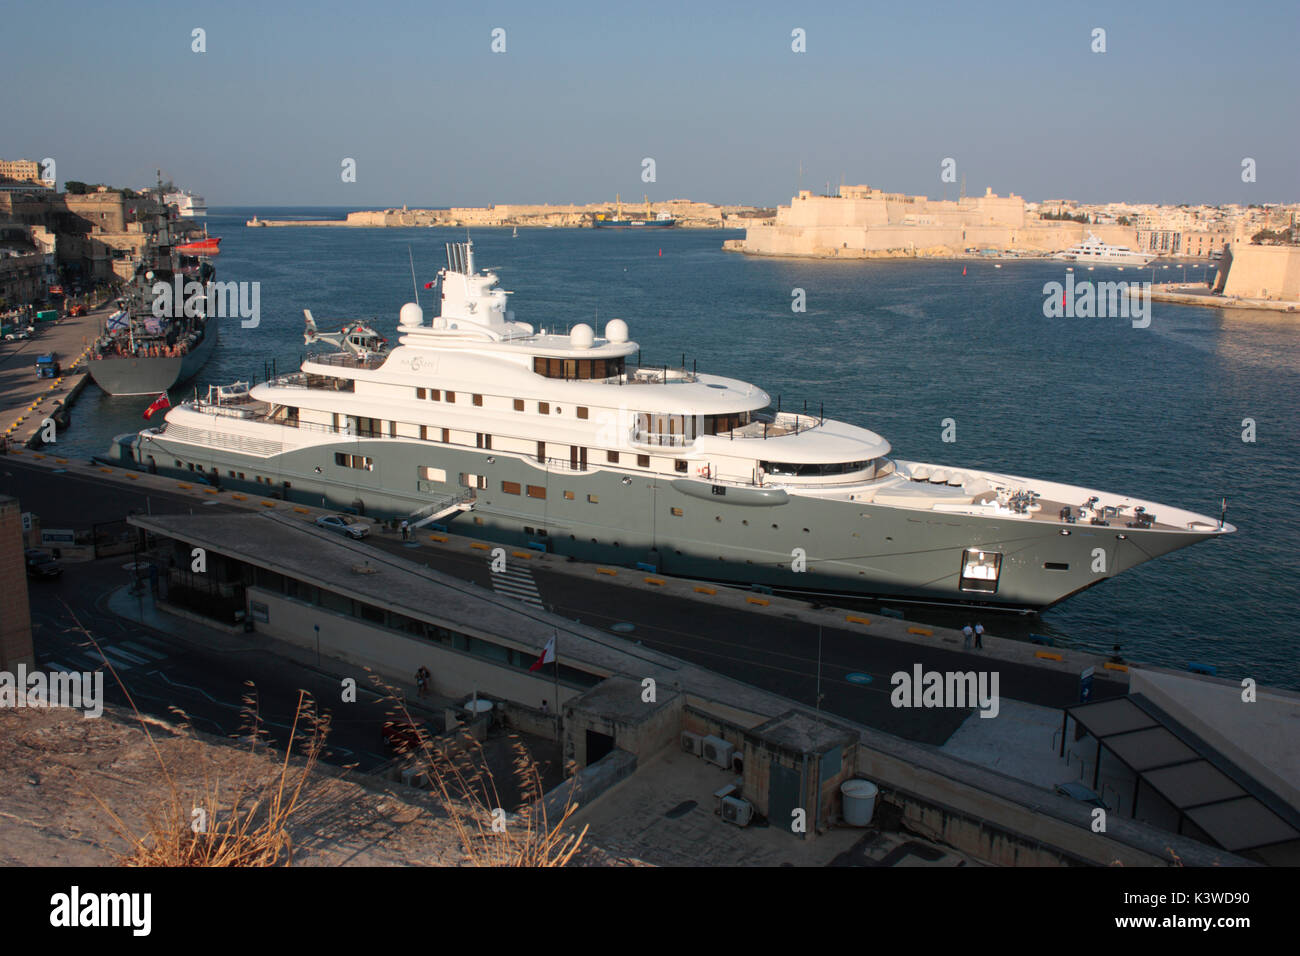 The 110m Lurssen luxury superyacht Radiant in Malta's Grand Harbour, with helicopter on board - Stock Image